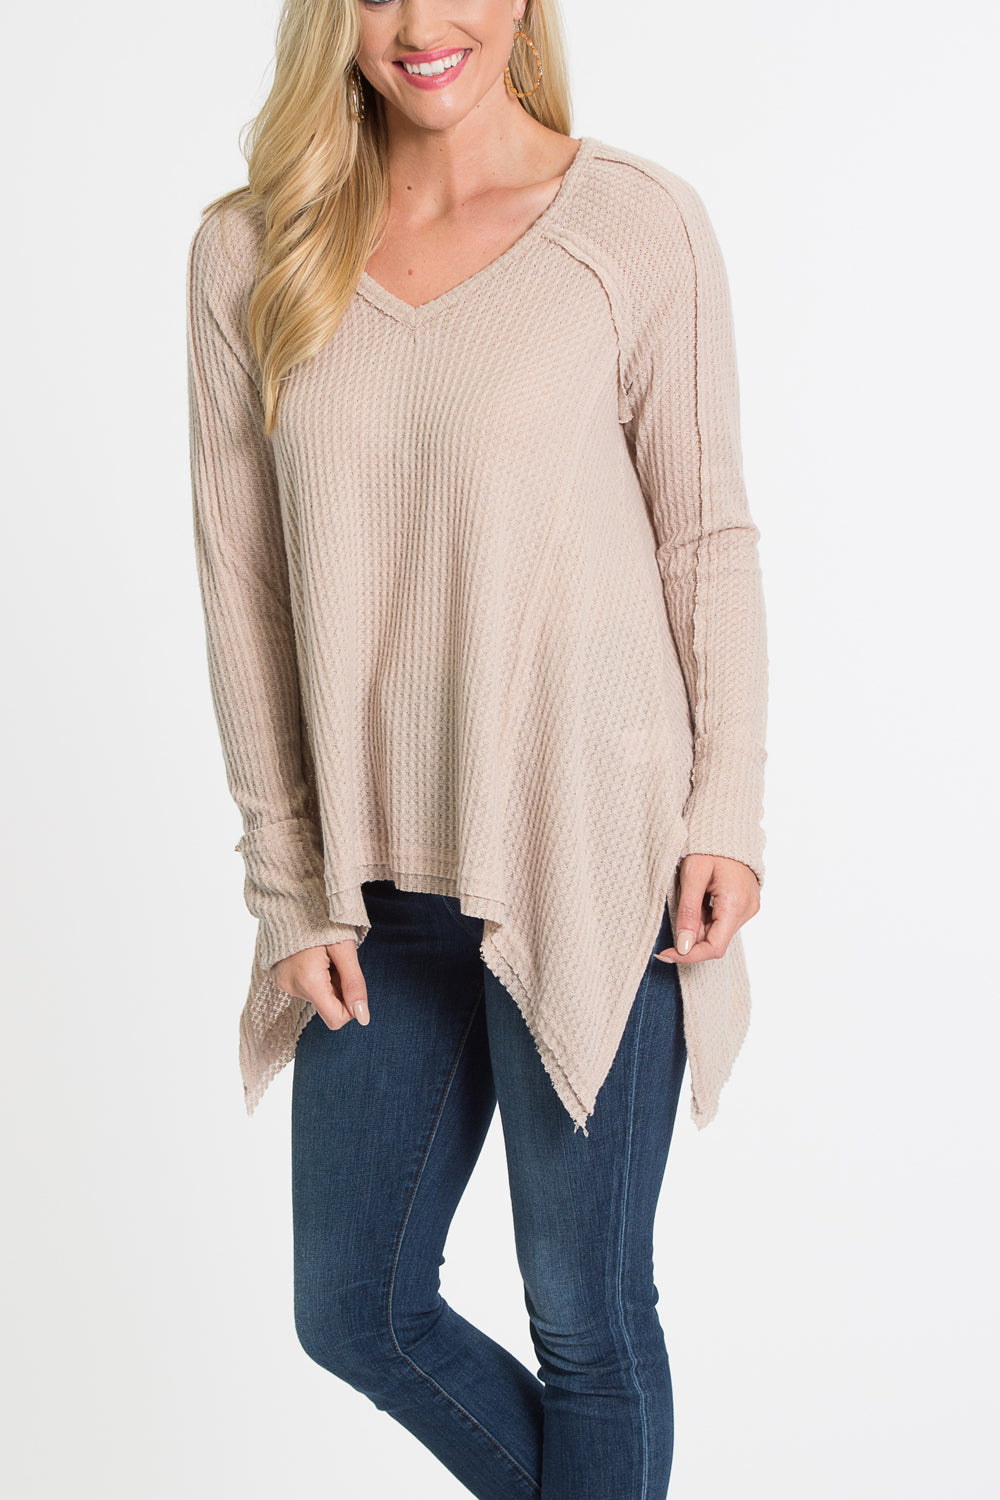 Melody V Neck Pullover Top - Oatmeal